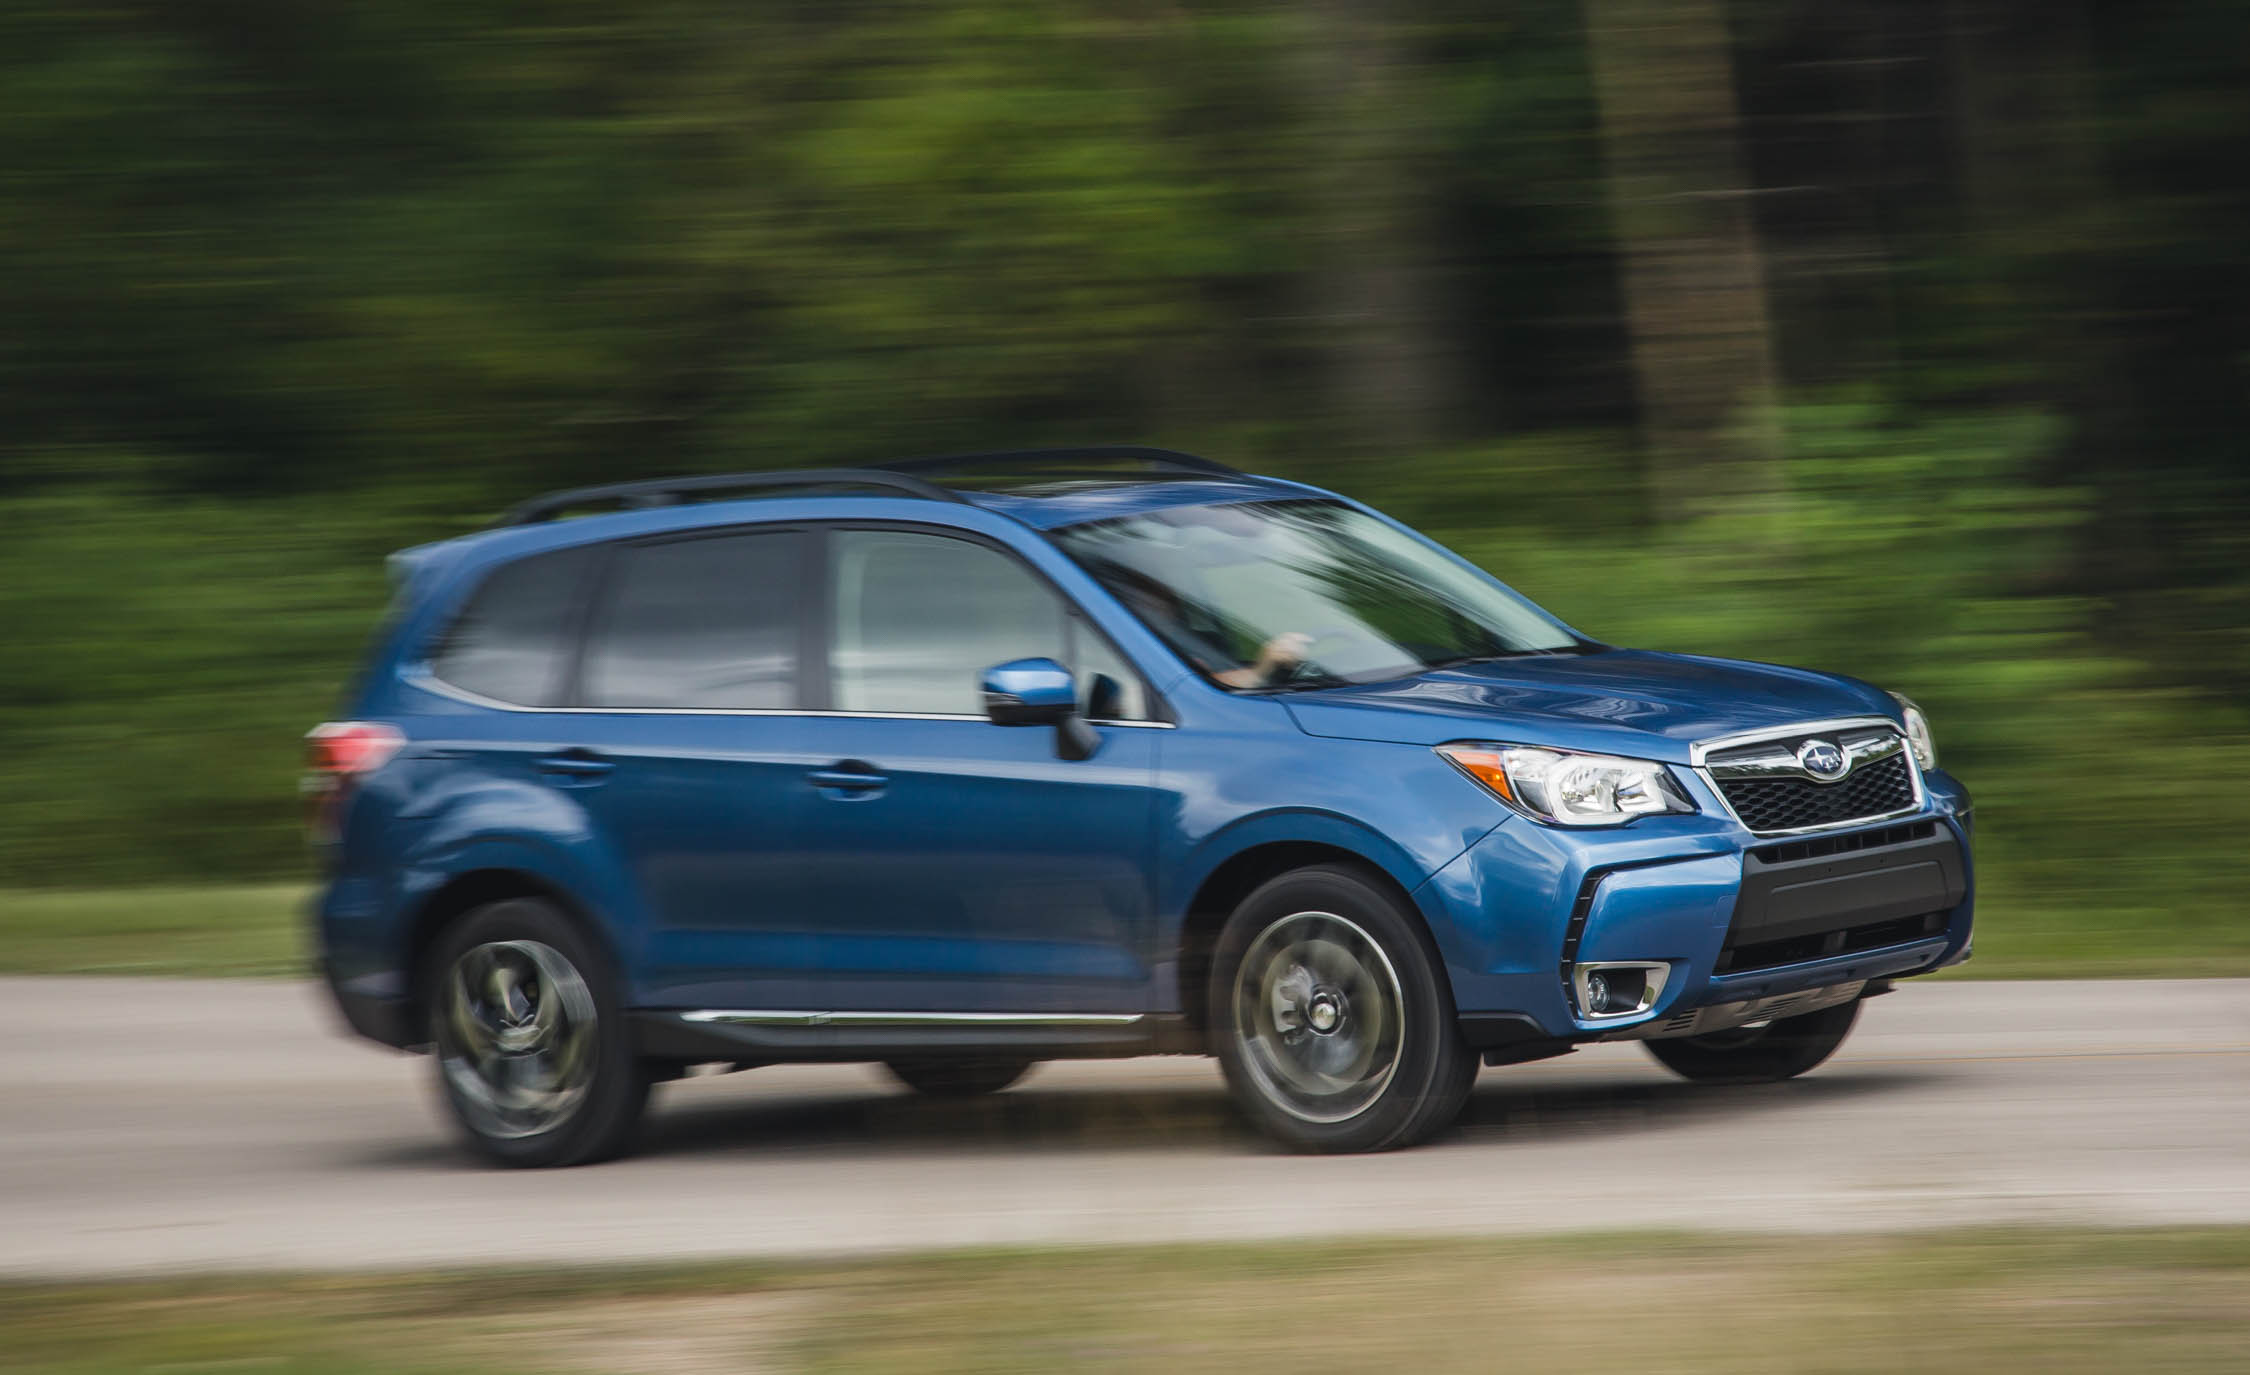 2016 Subaru Forester 2 0xt Touring Test Front And Side View (Photo 27 of 29)